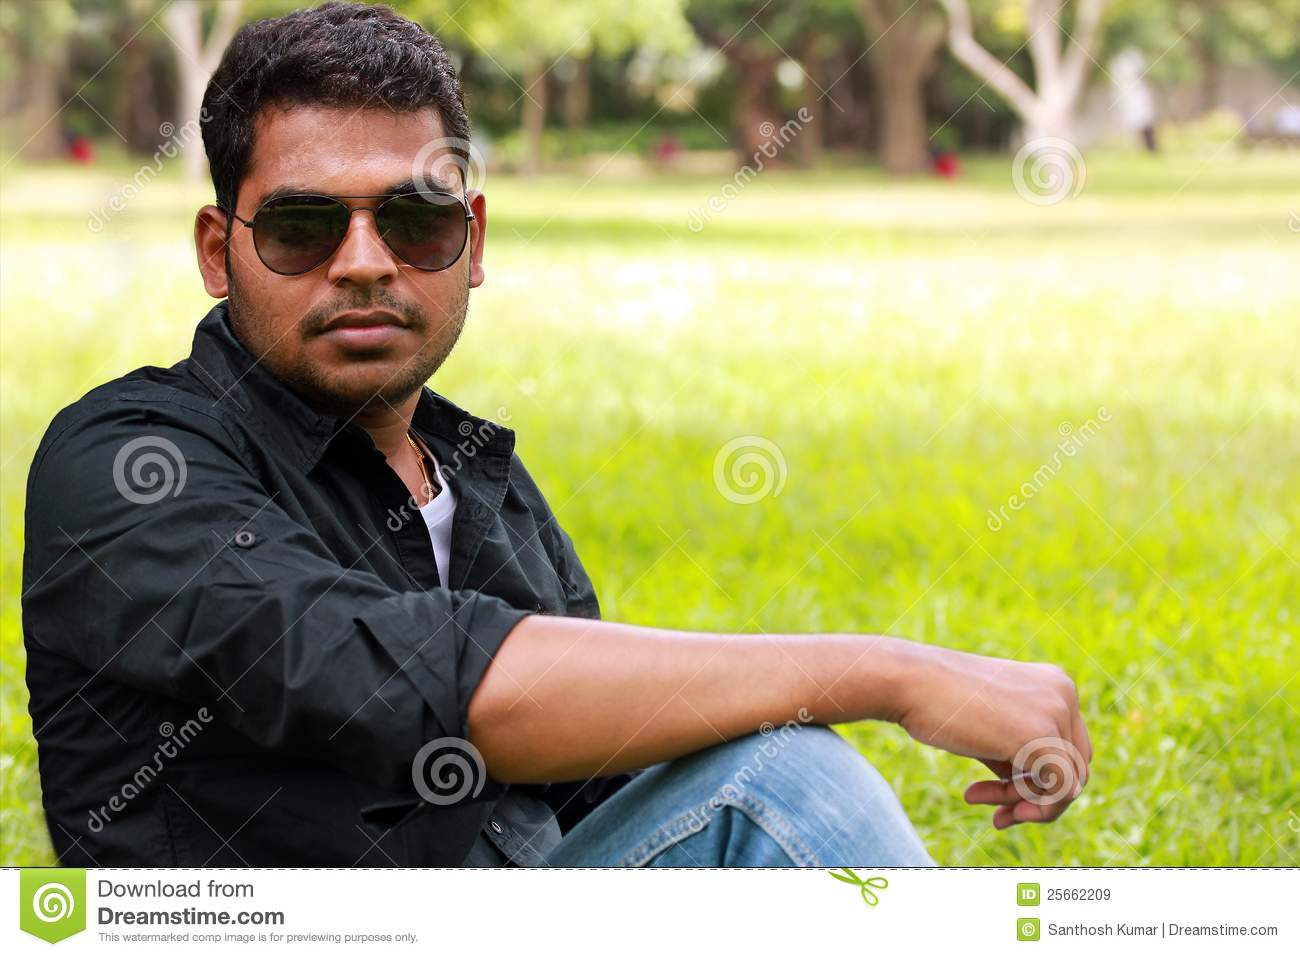 To acquire Stylish indian boy pic pictures trends